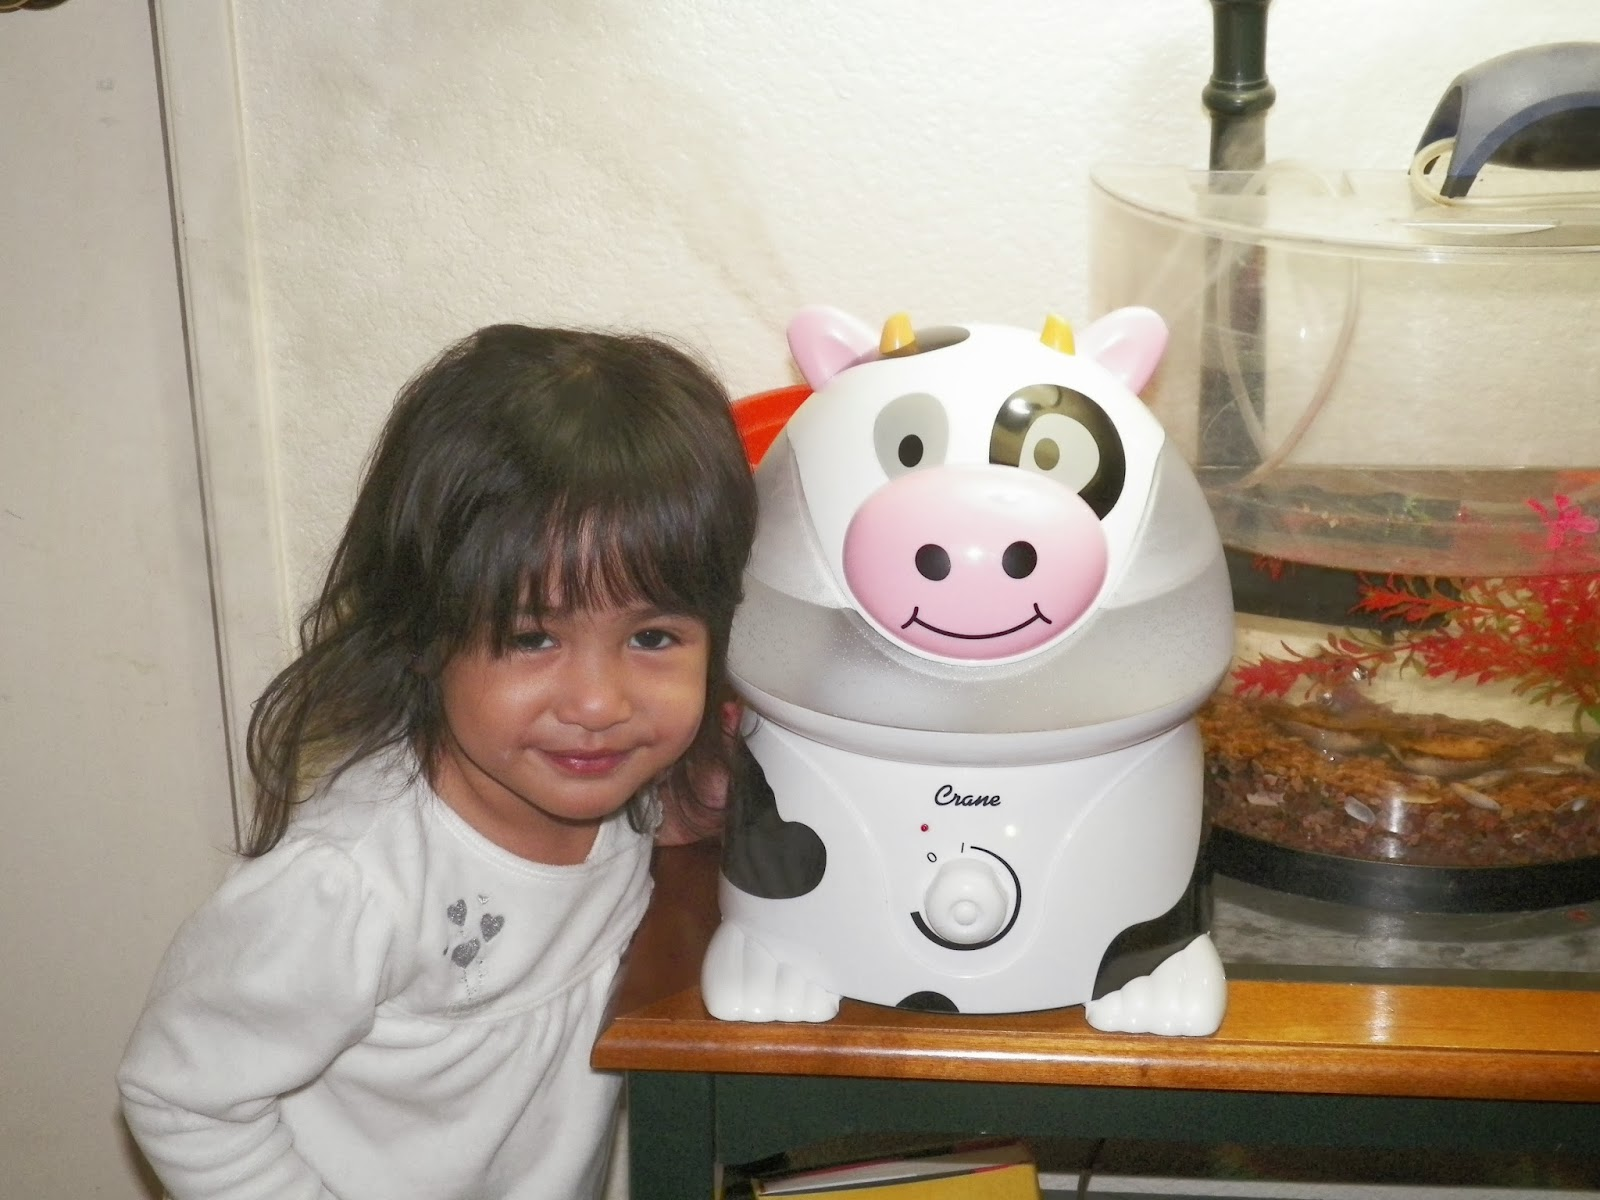 year old daughter (almost 3! :)) even posed beside the humidifier #854659